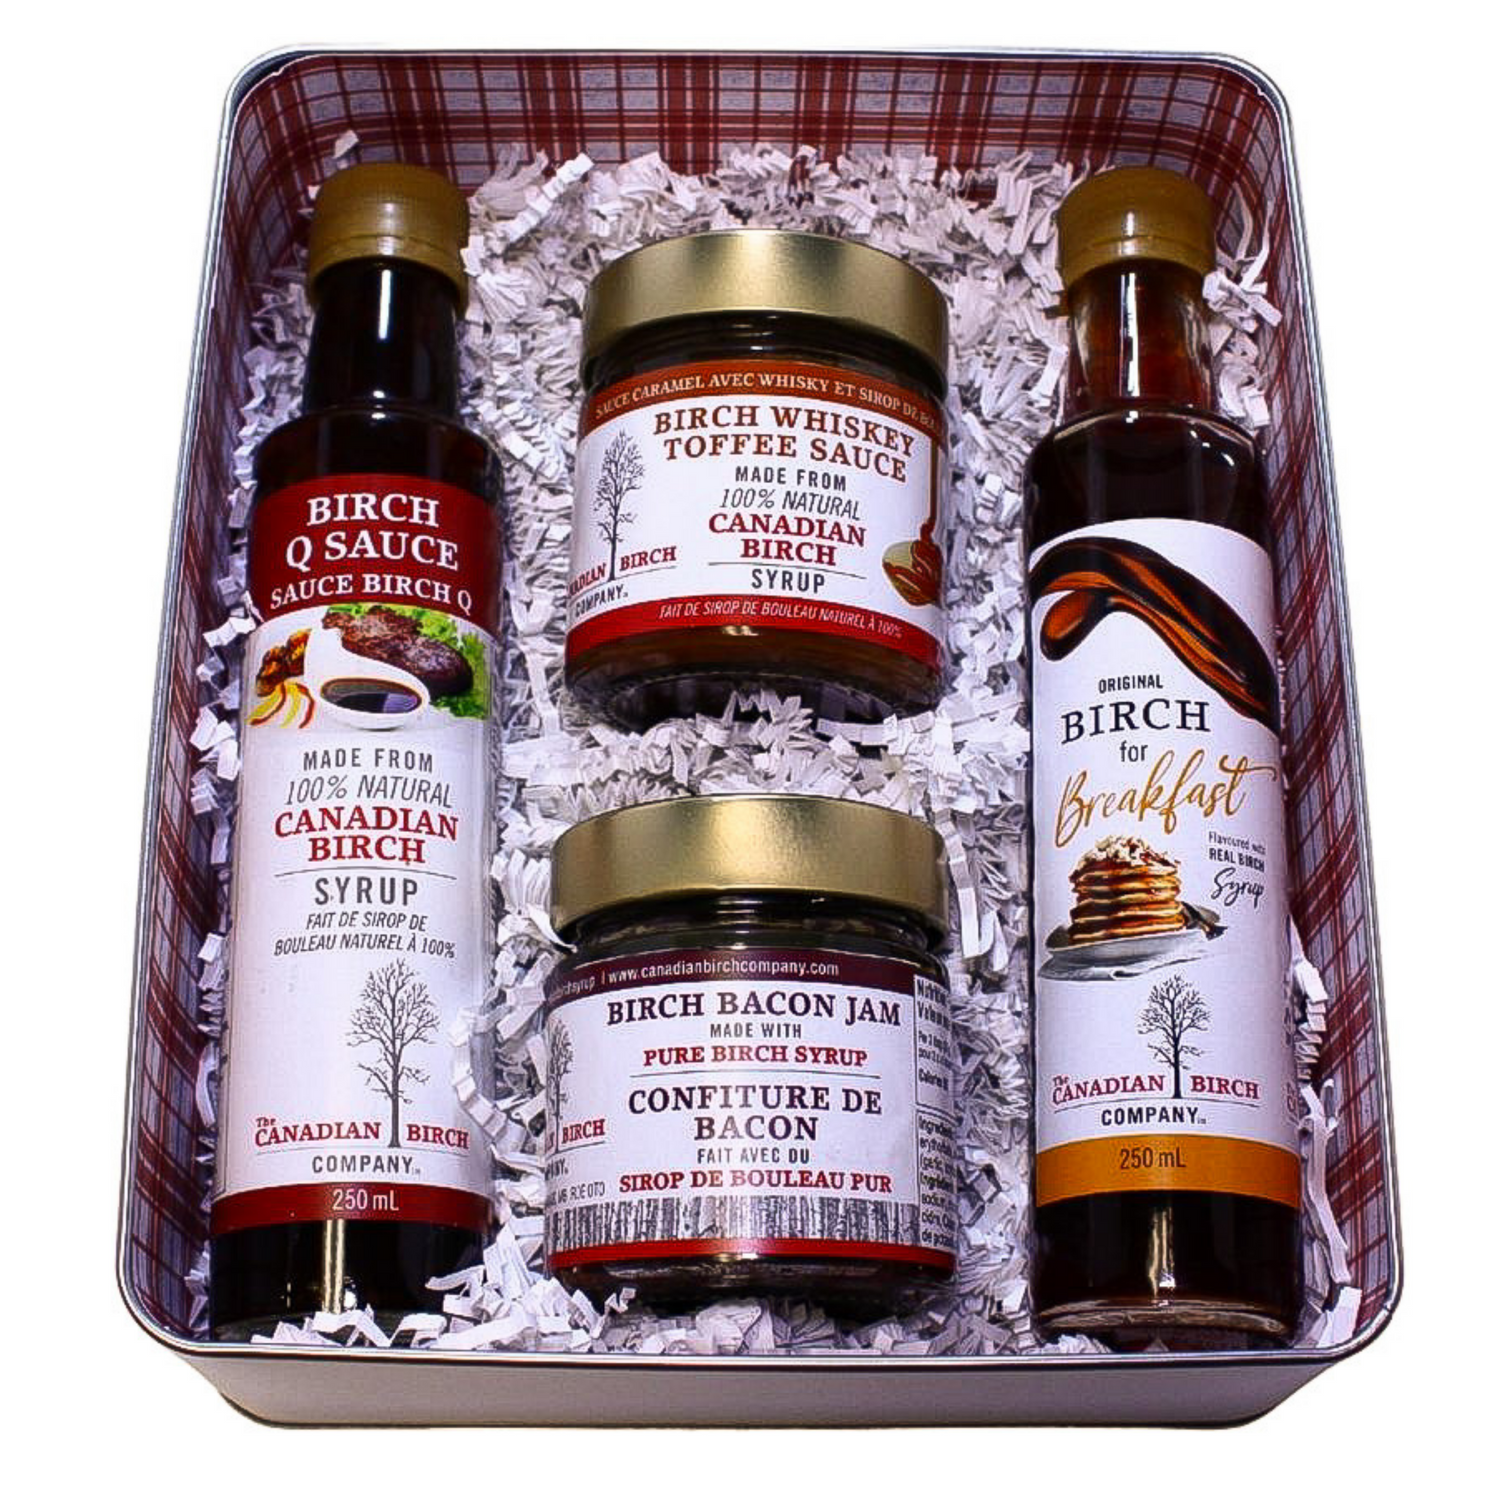 A silver tin box with window lid, and products nestled inside with crinke paper. Included are Birch Bacon Jam, Birch Whiskey Toffee Sauce, Birch Q Sauce and Birch for Breakfast syrup.